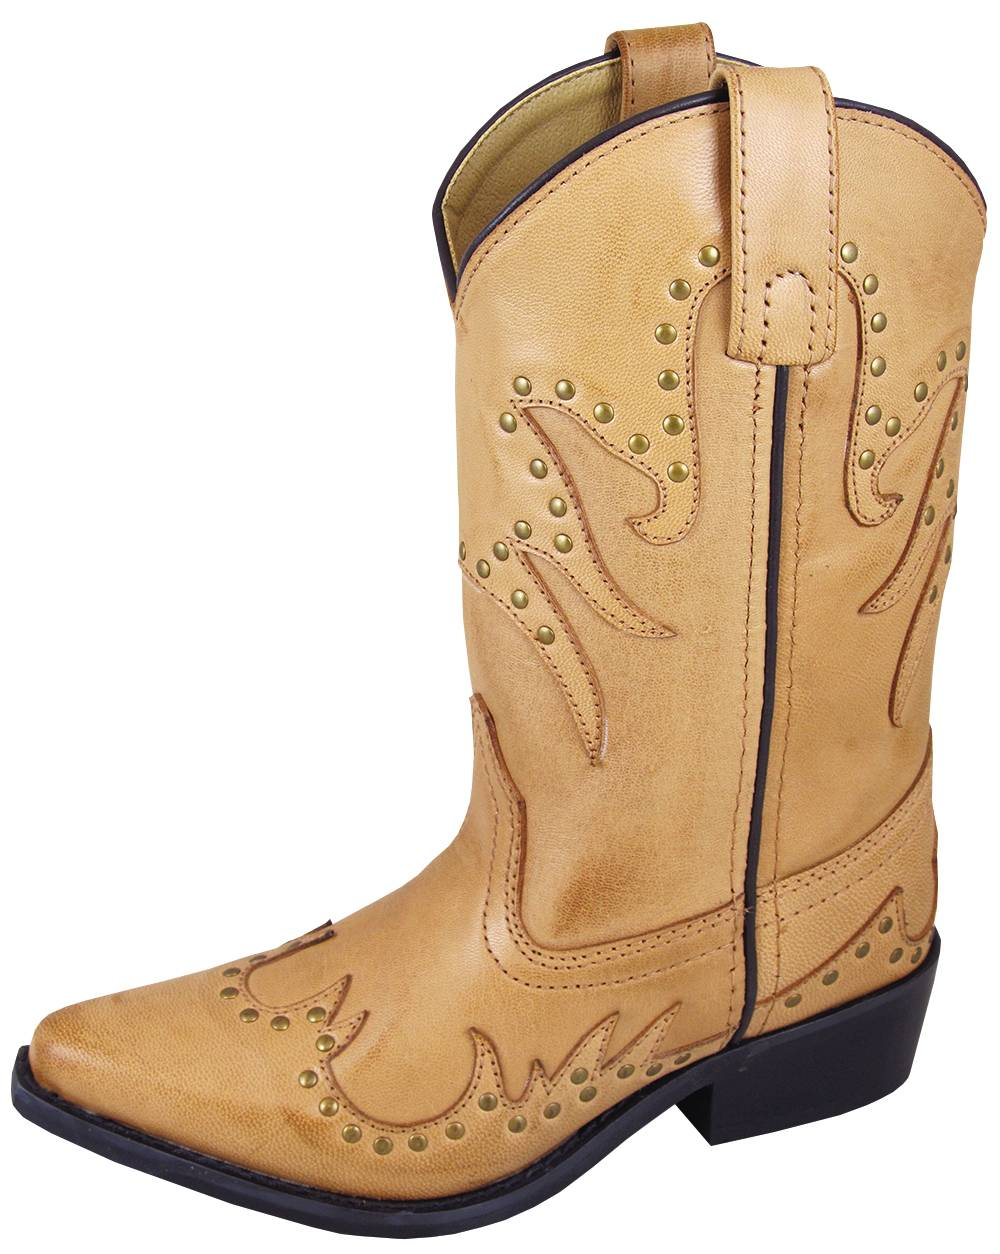 Smoky Mountain Dolly Boots - Children's -Tan